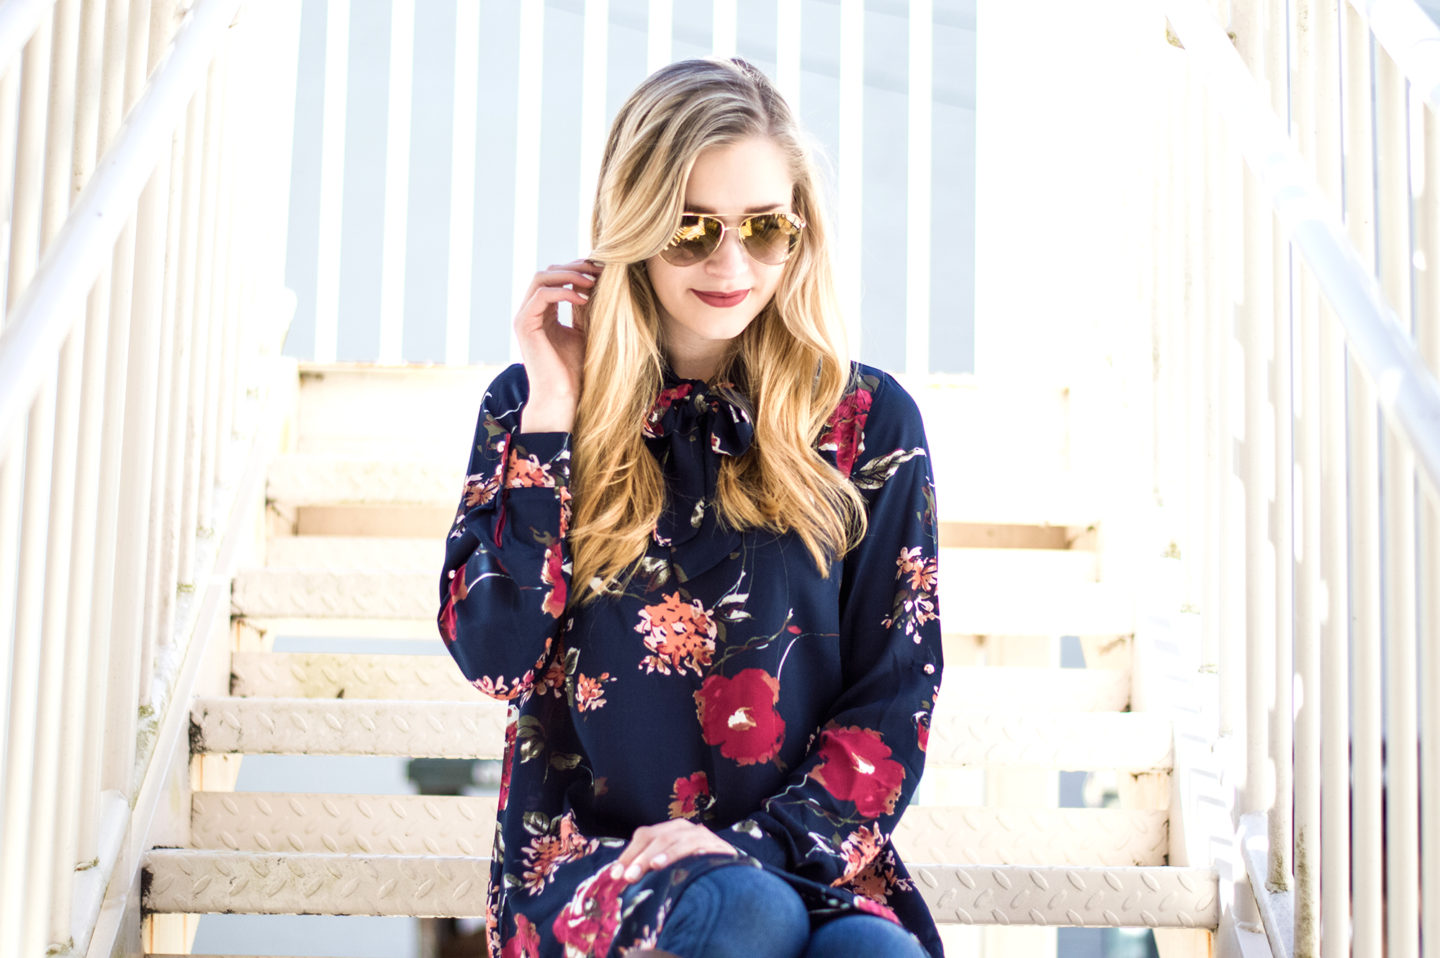 Flirty Floral Tunic for a Daytime Valentine's Date